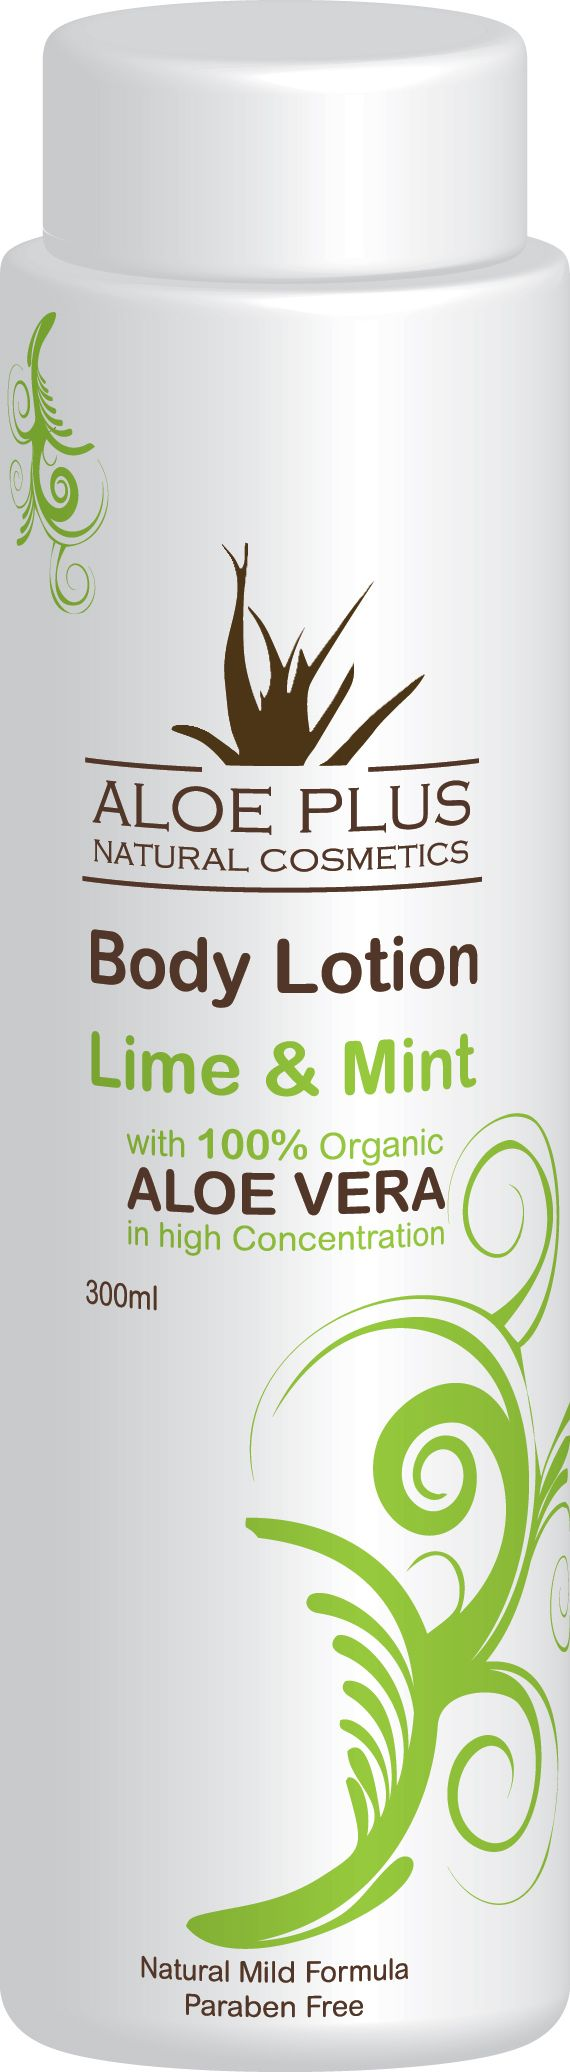 Aloe Plus Body Lotion 300ml with 100% Organic Aloe Vera (Lime & mint)